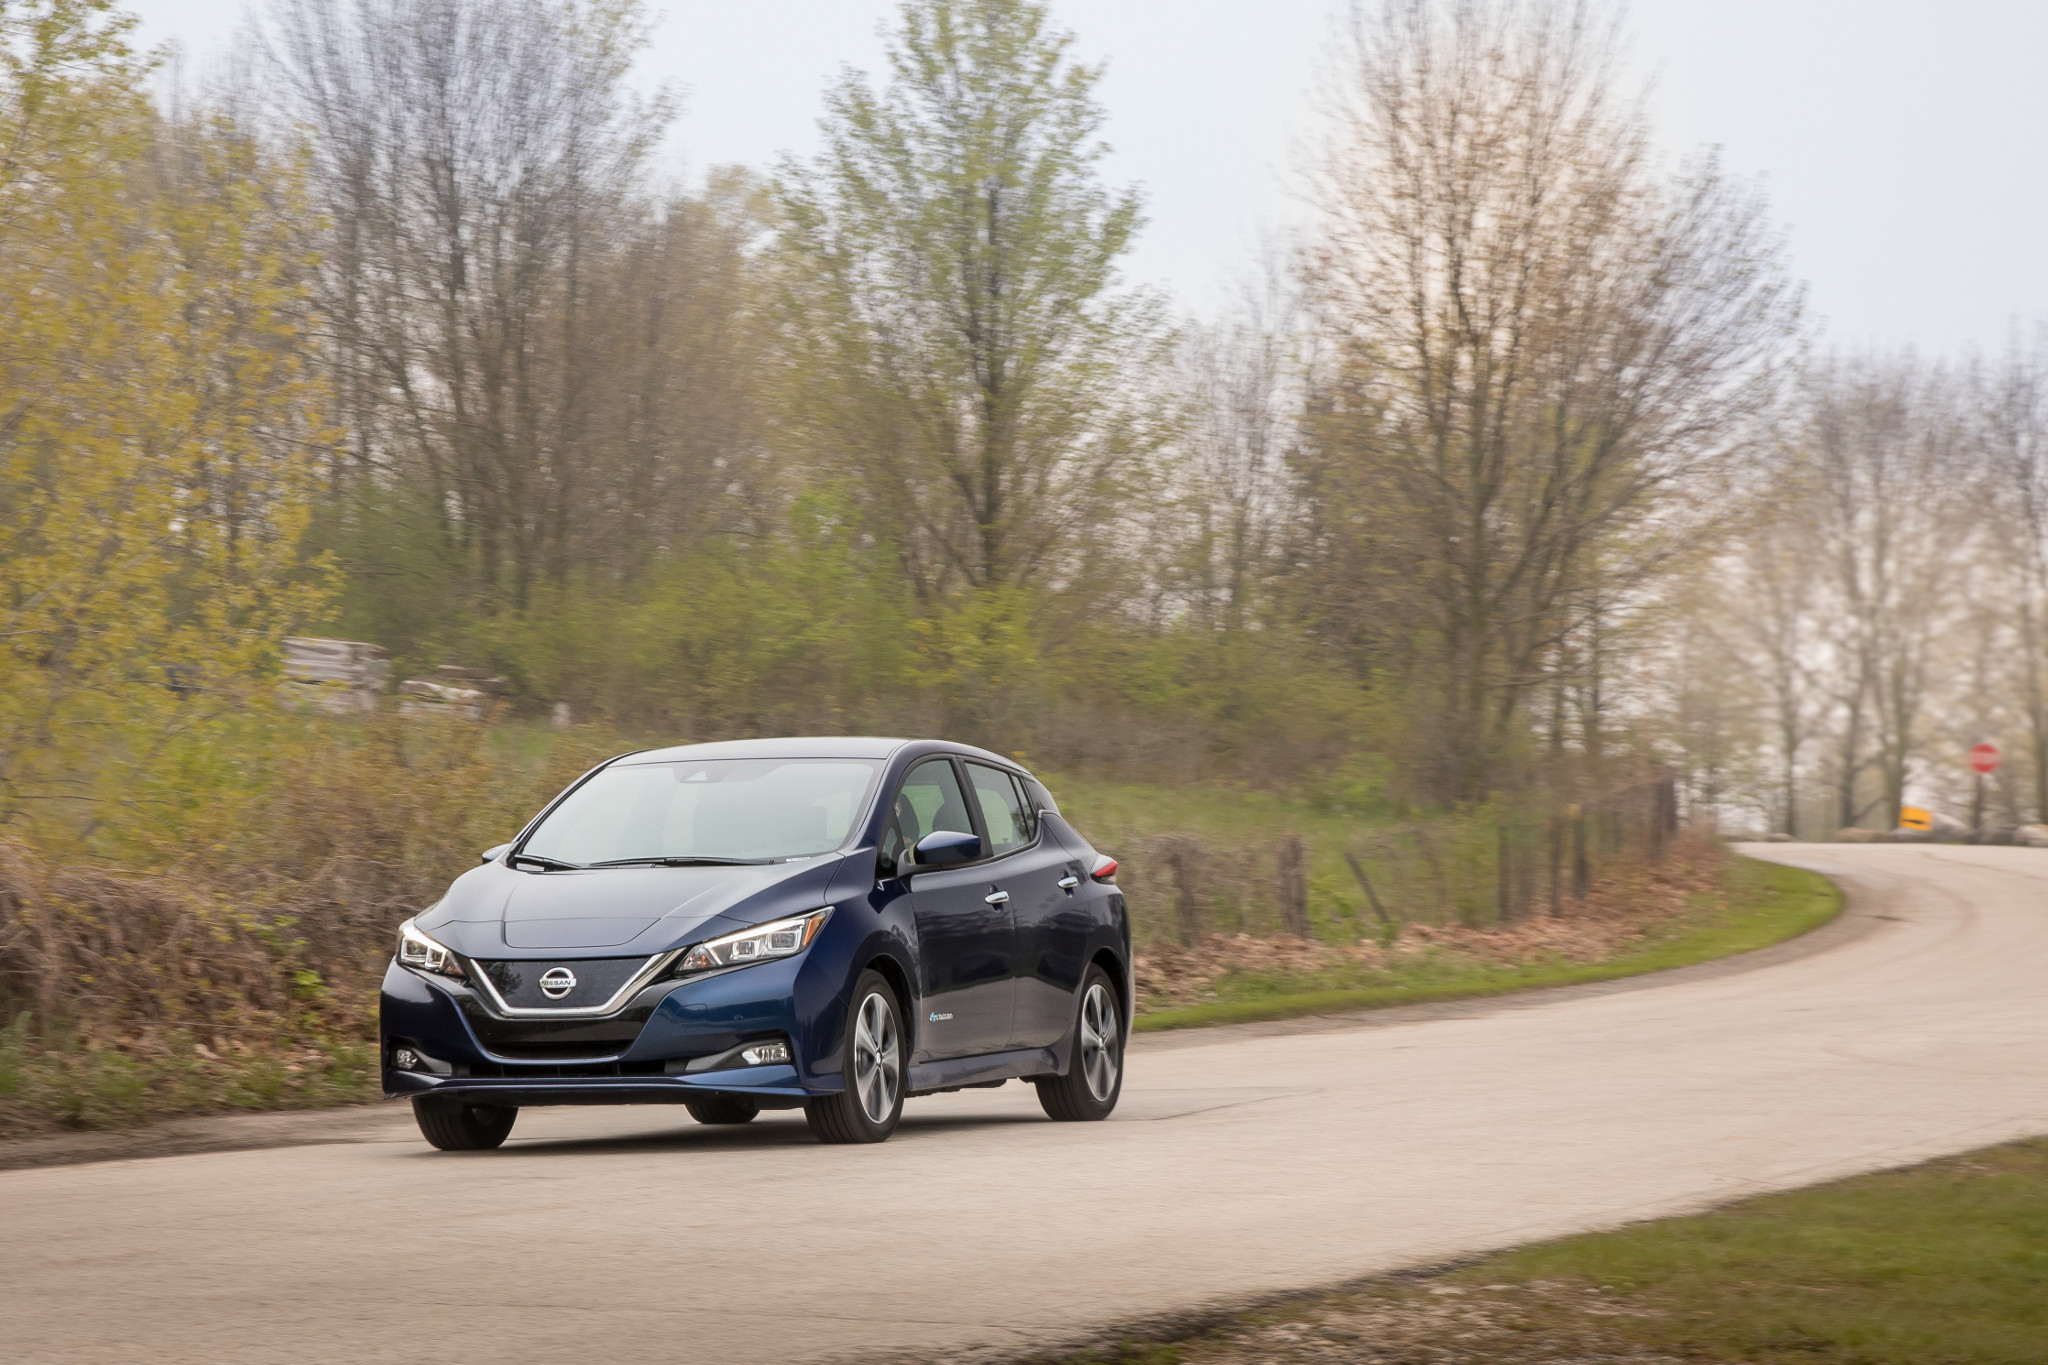 2019 Nissan Leaf Plus: Everything You Need to Know